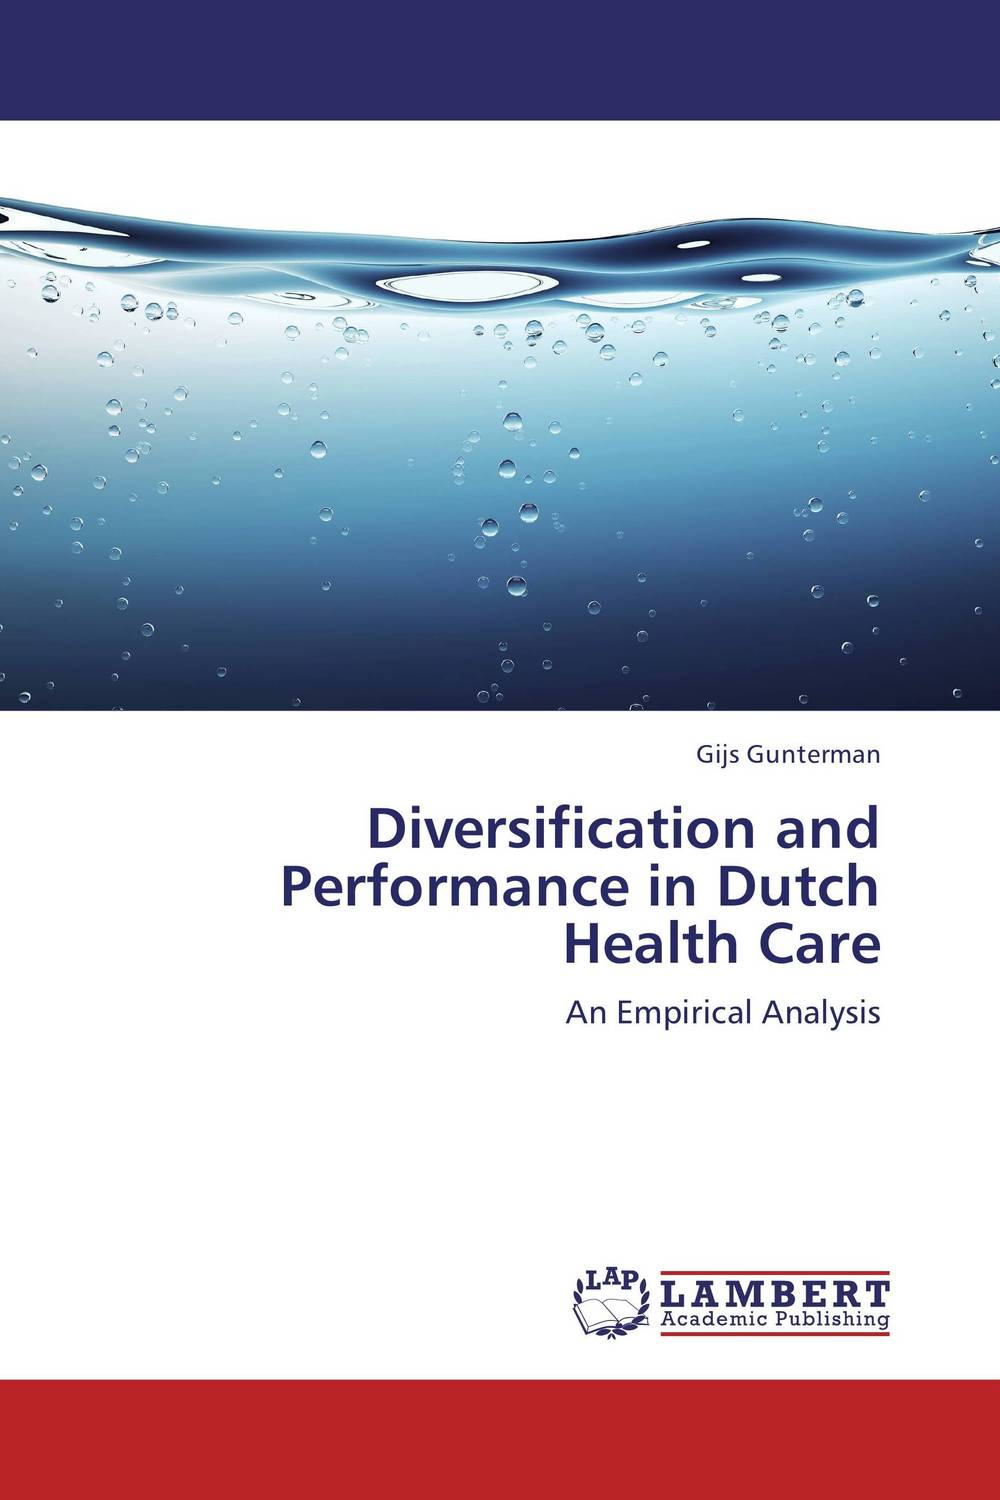 Diversification and Performance in Dutch Health Care prostate health devices is prostate removal prostatitis mainly for the prostate health and prostatitis health capsule